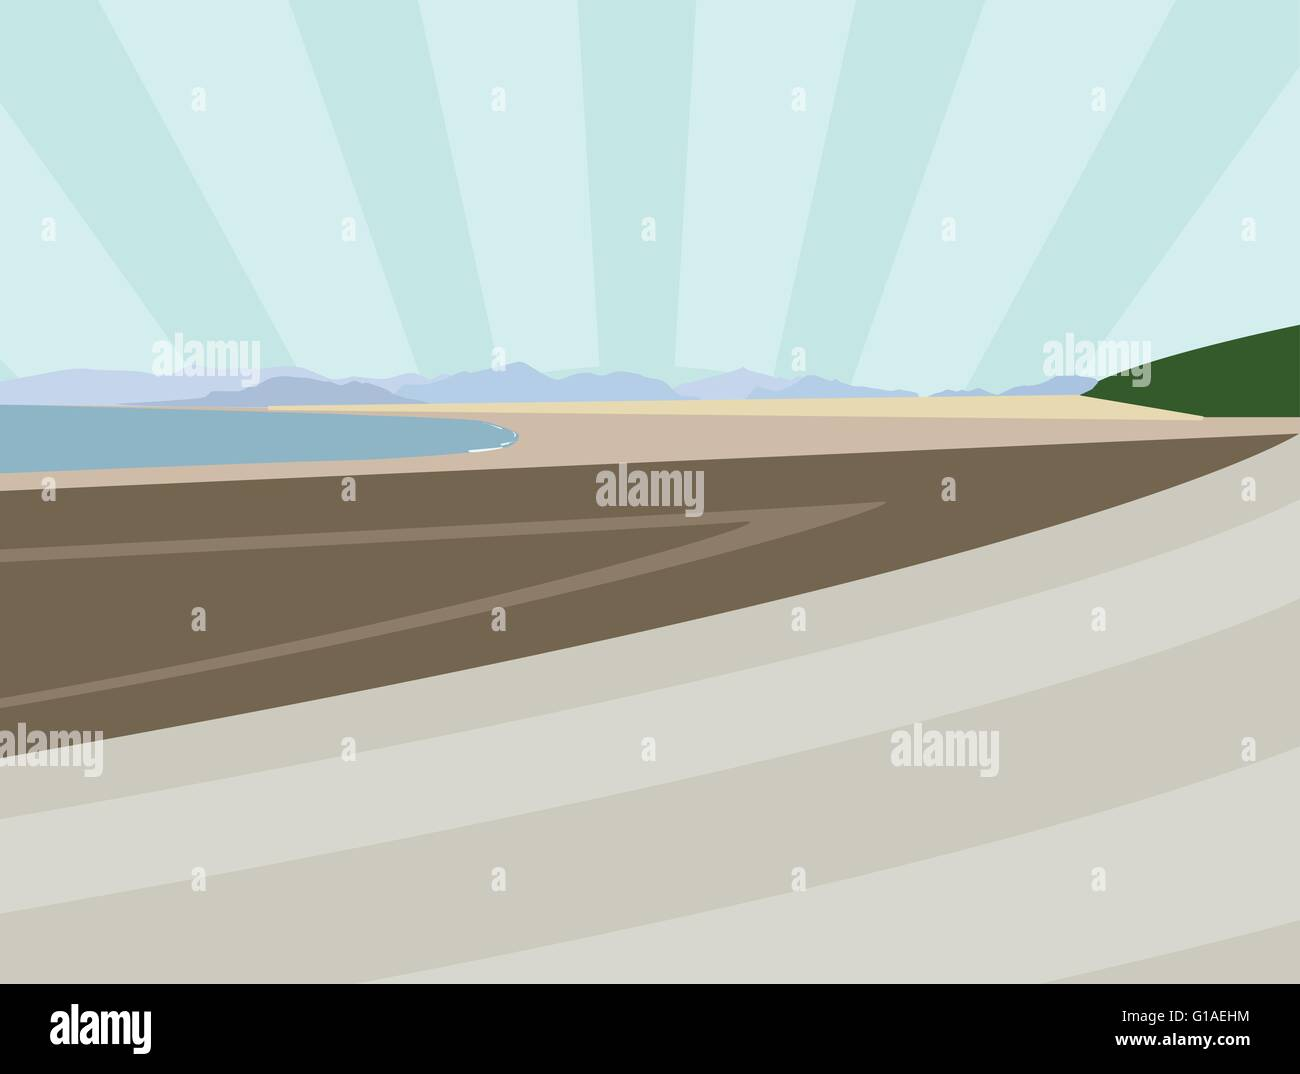 A vector illustration of a beach in North Wales - Stock Vector